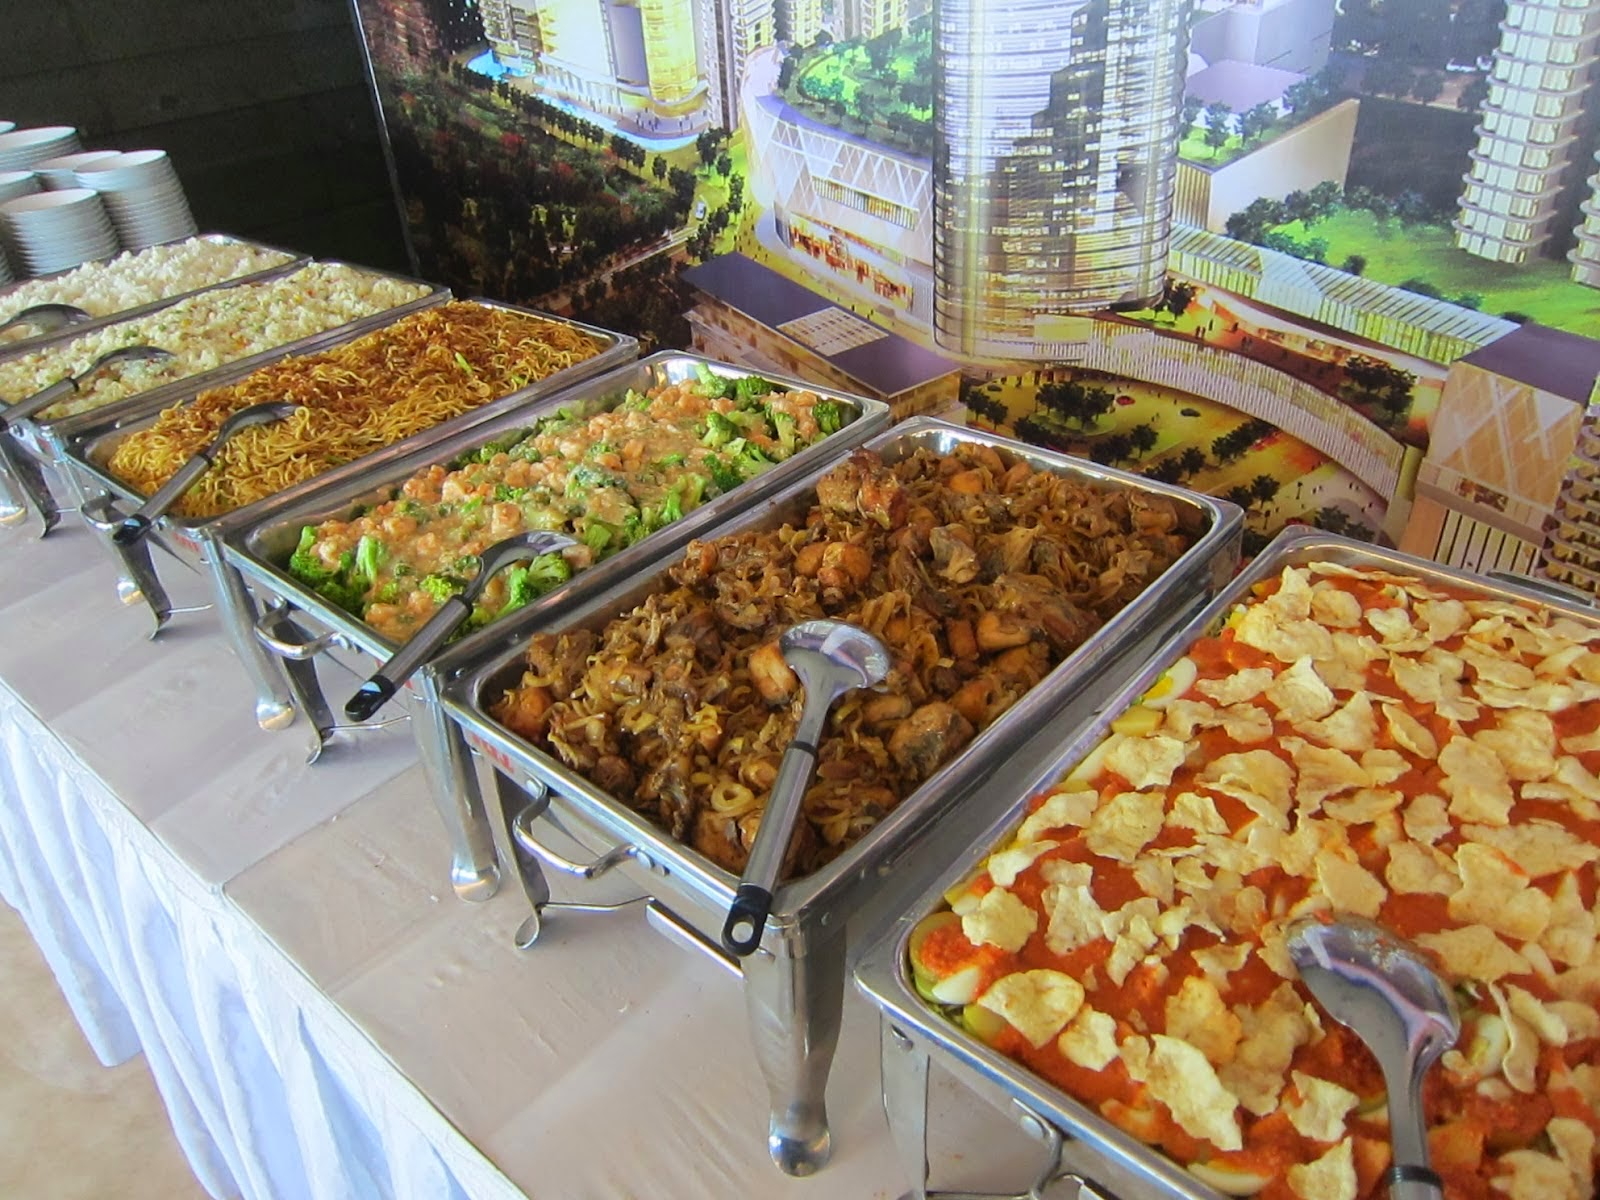 CATERING HEALTY FOOD